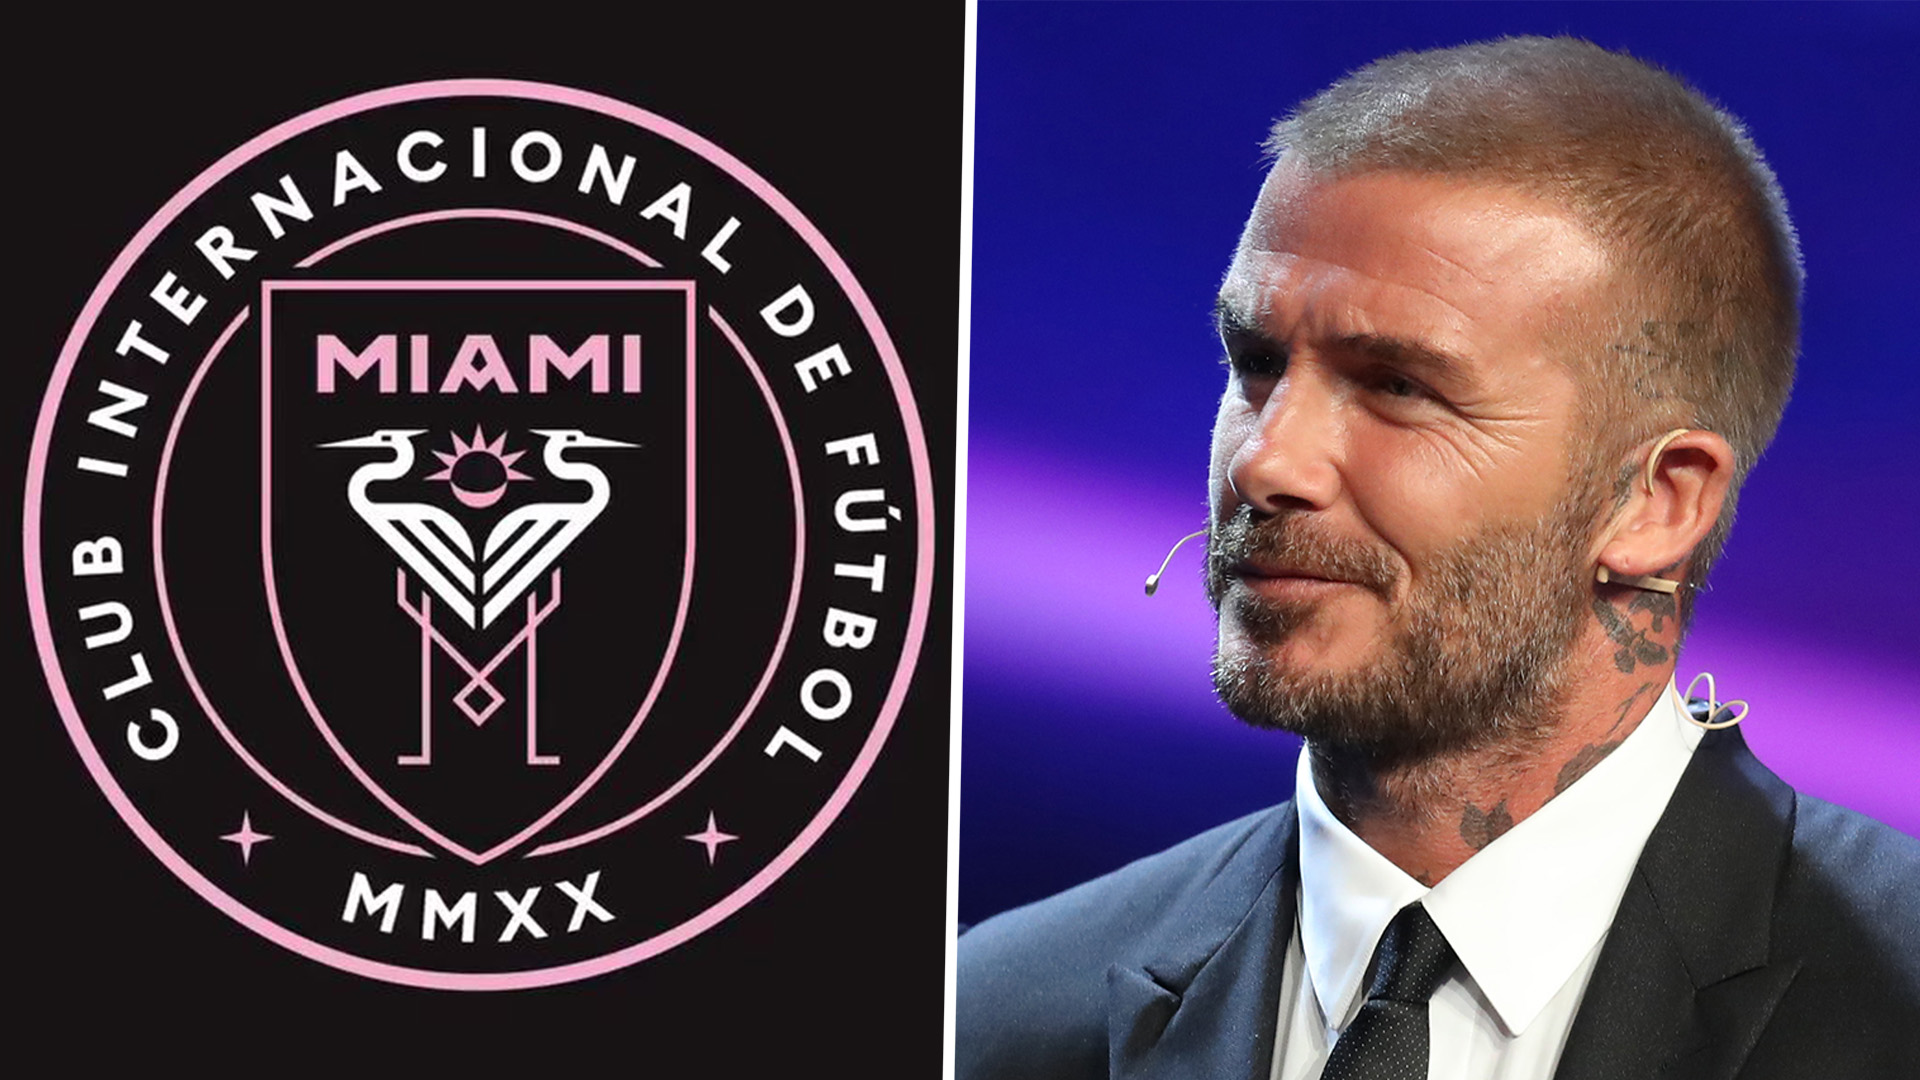 Name and crest of David Beckham's MLS team have been officially confirmed